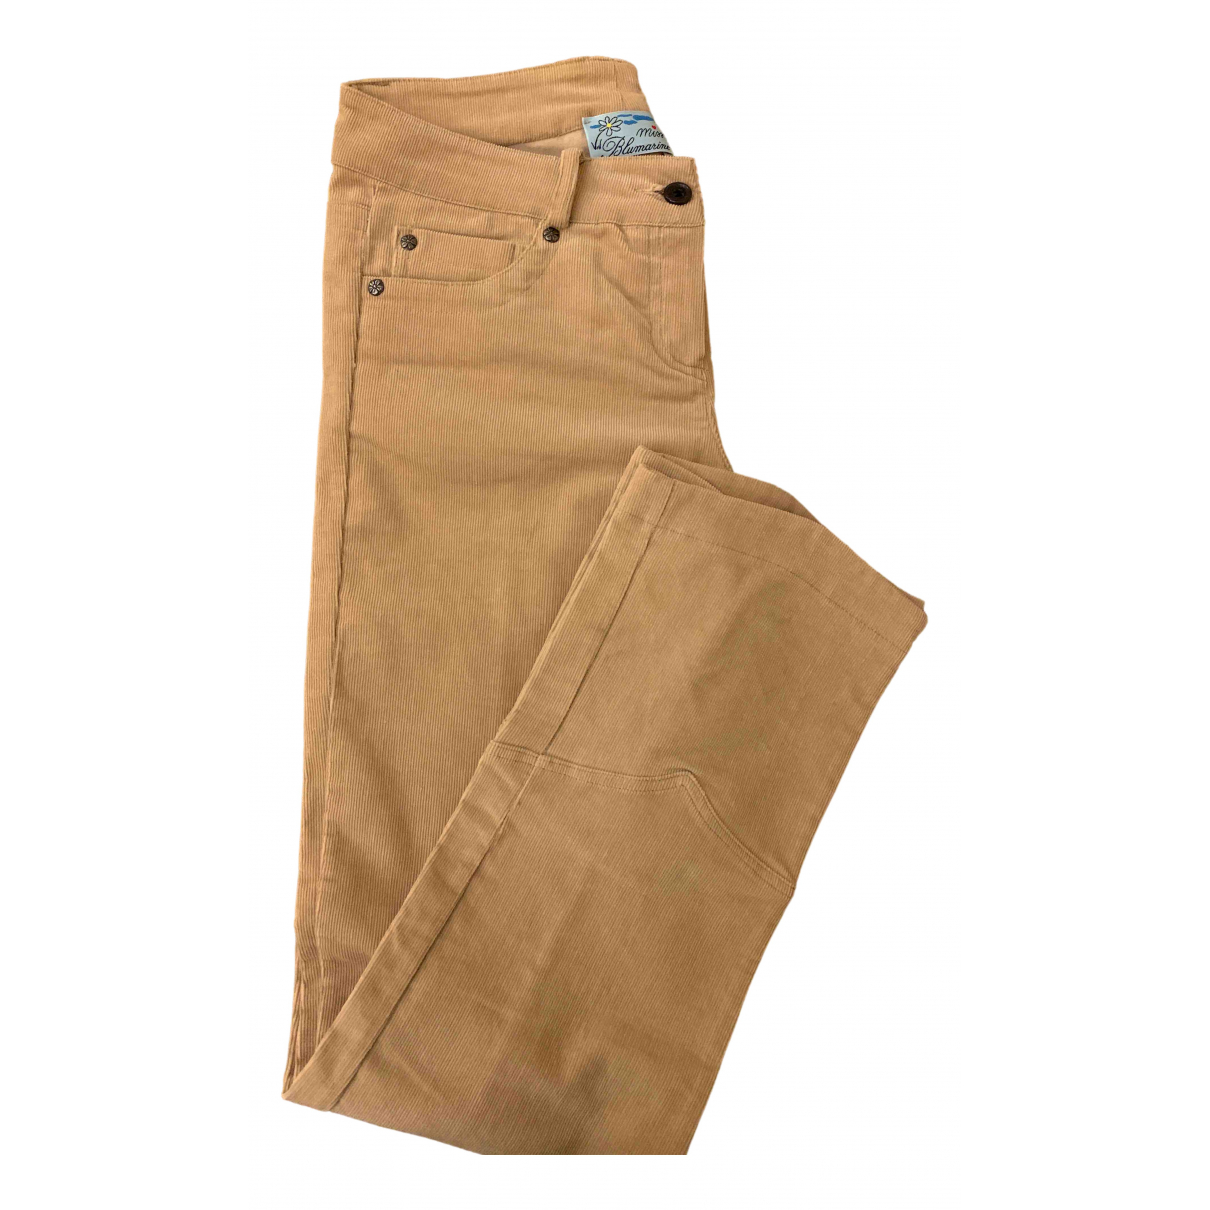 Blumarine N Camel Cotton Trousers for Kids 12 years - XS FR